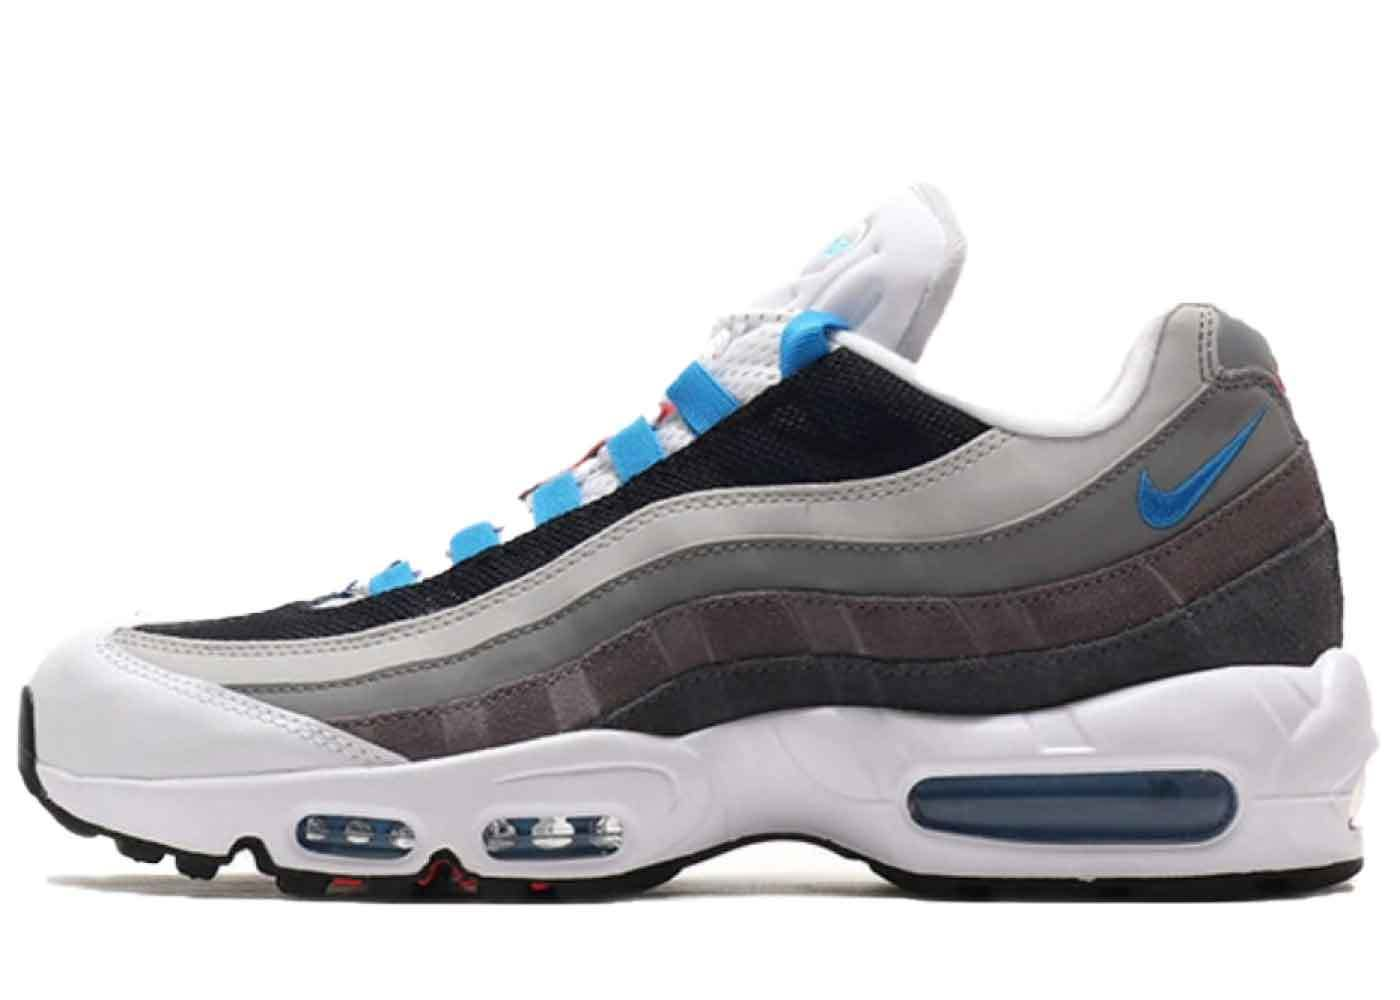 Nike Air Max 95 Greedy (2020)の写真